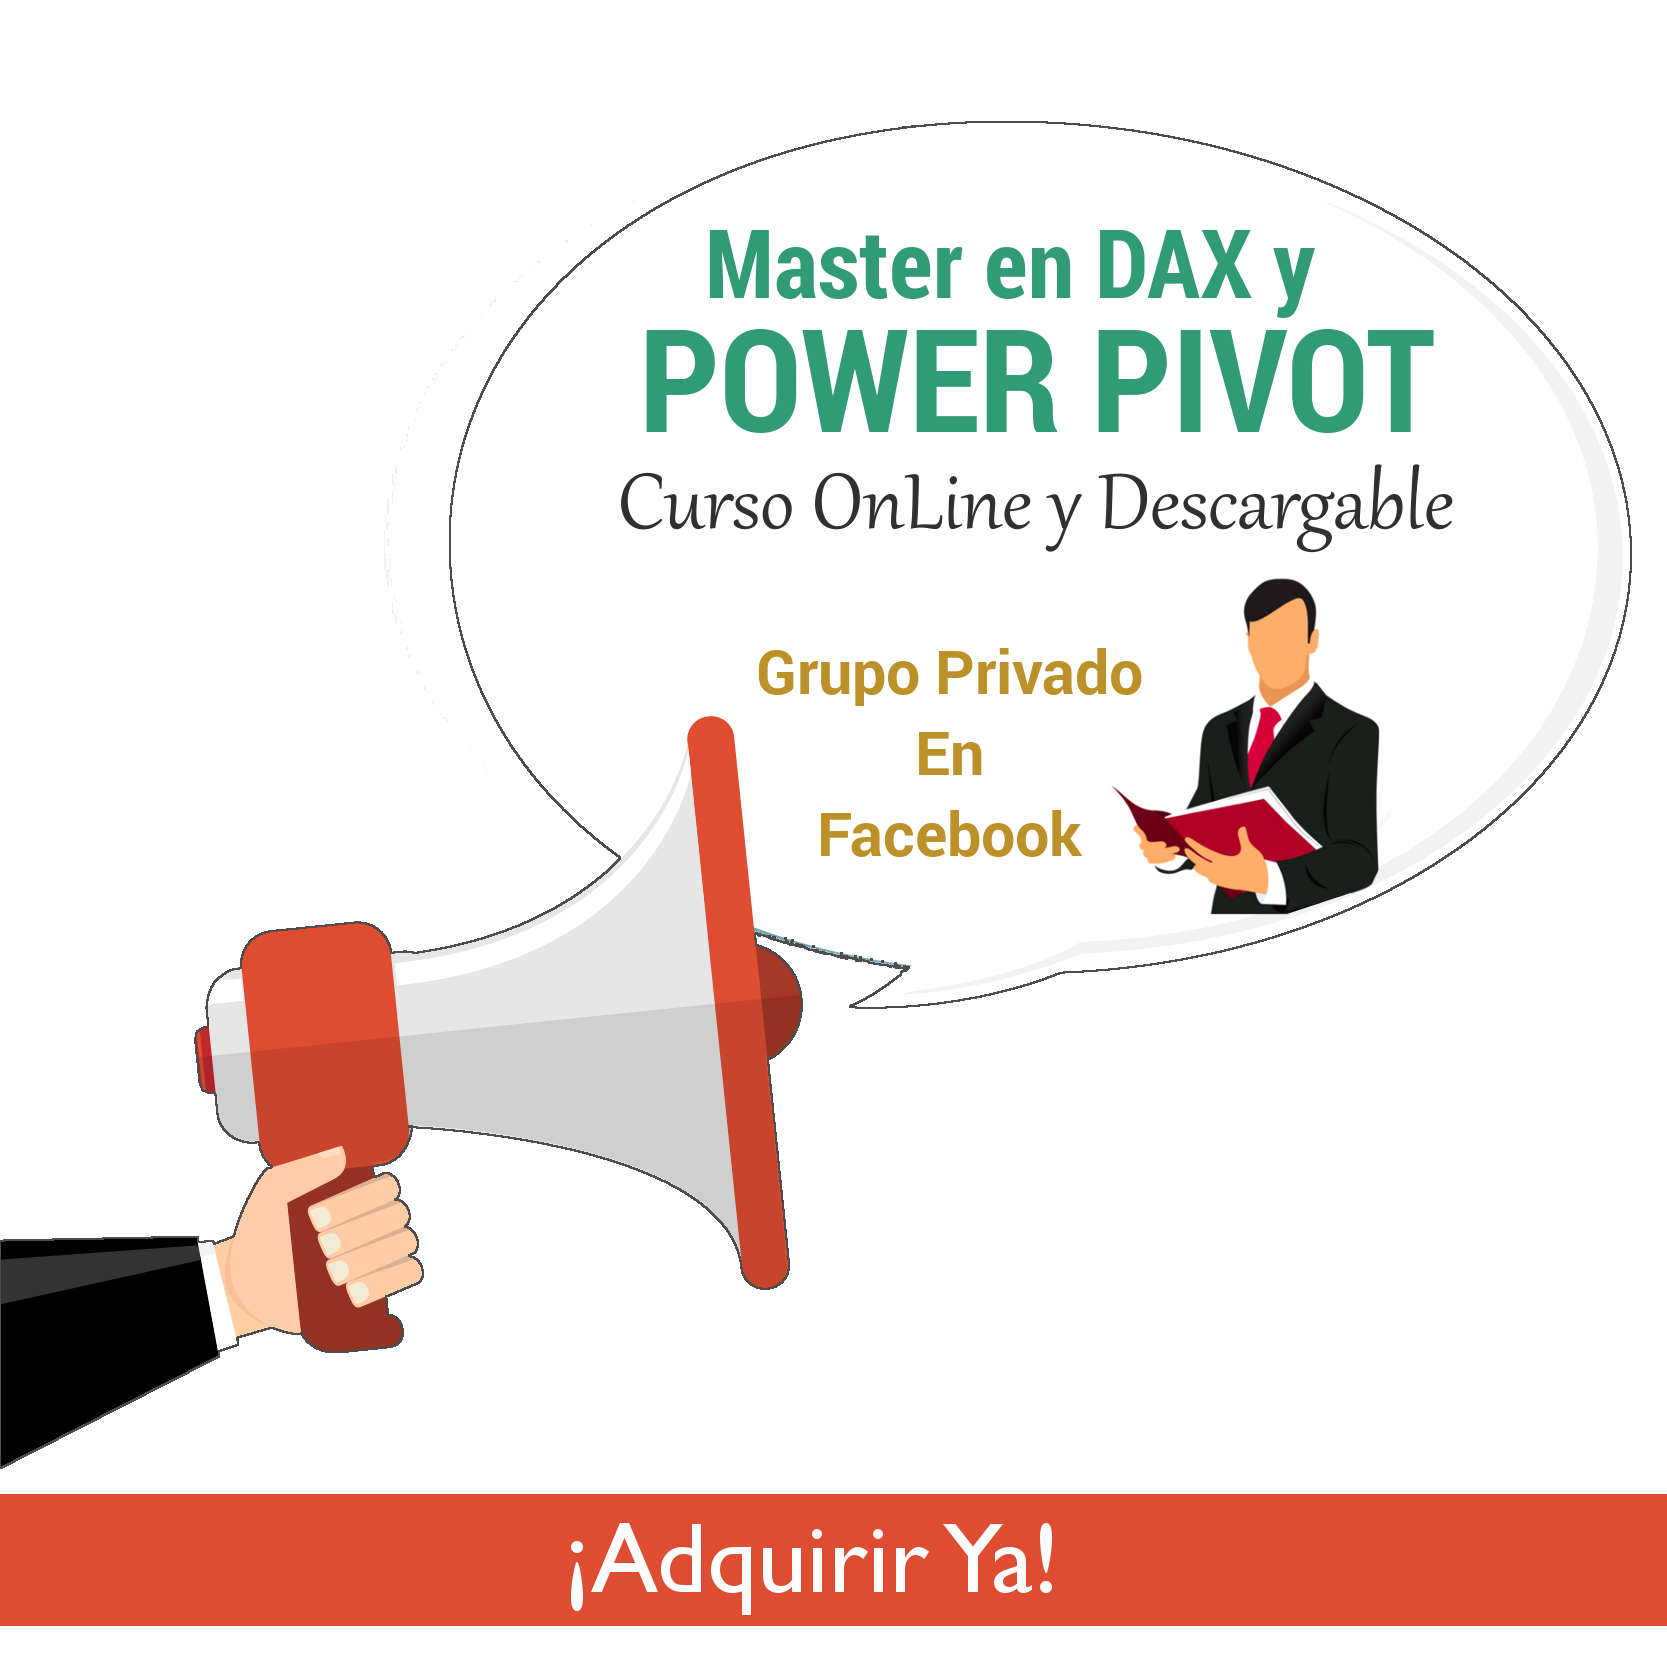 Master en DAX y Power Pivot